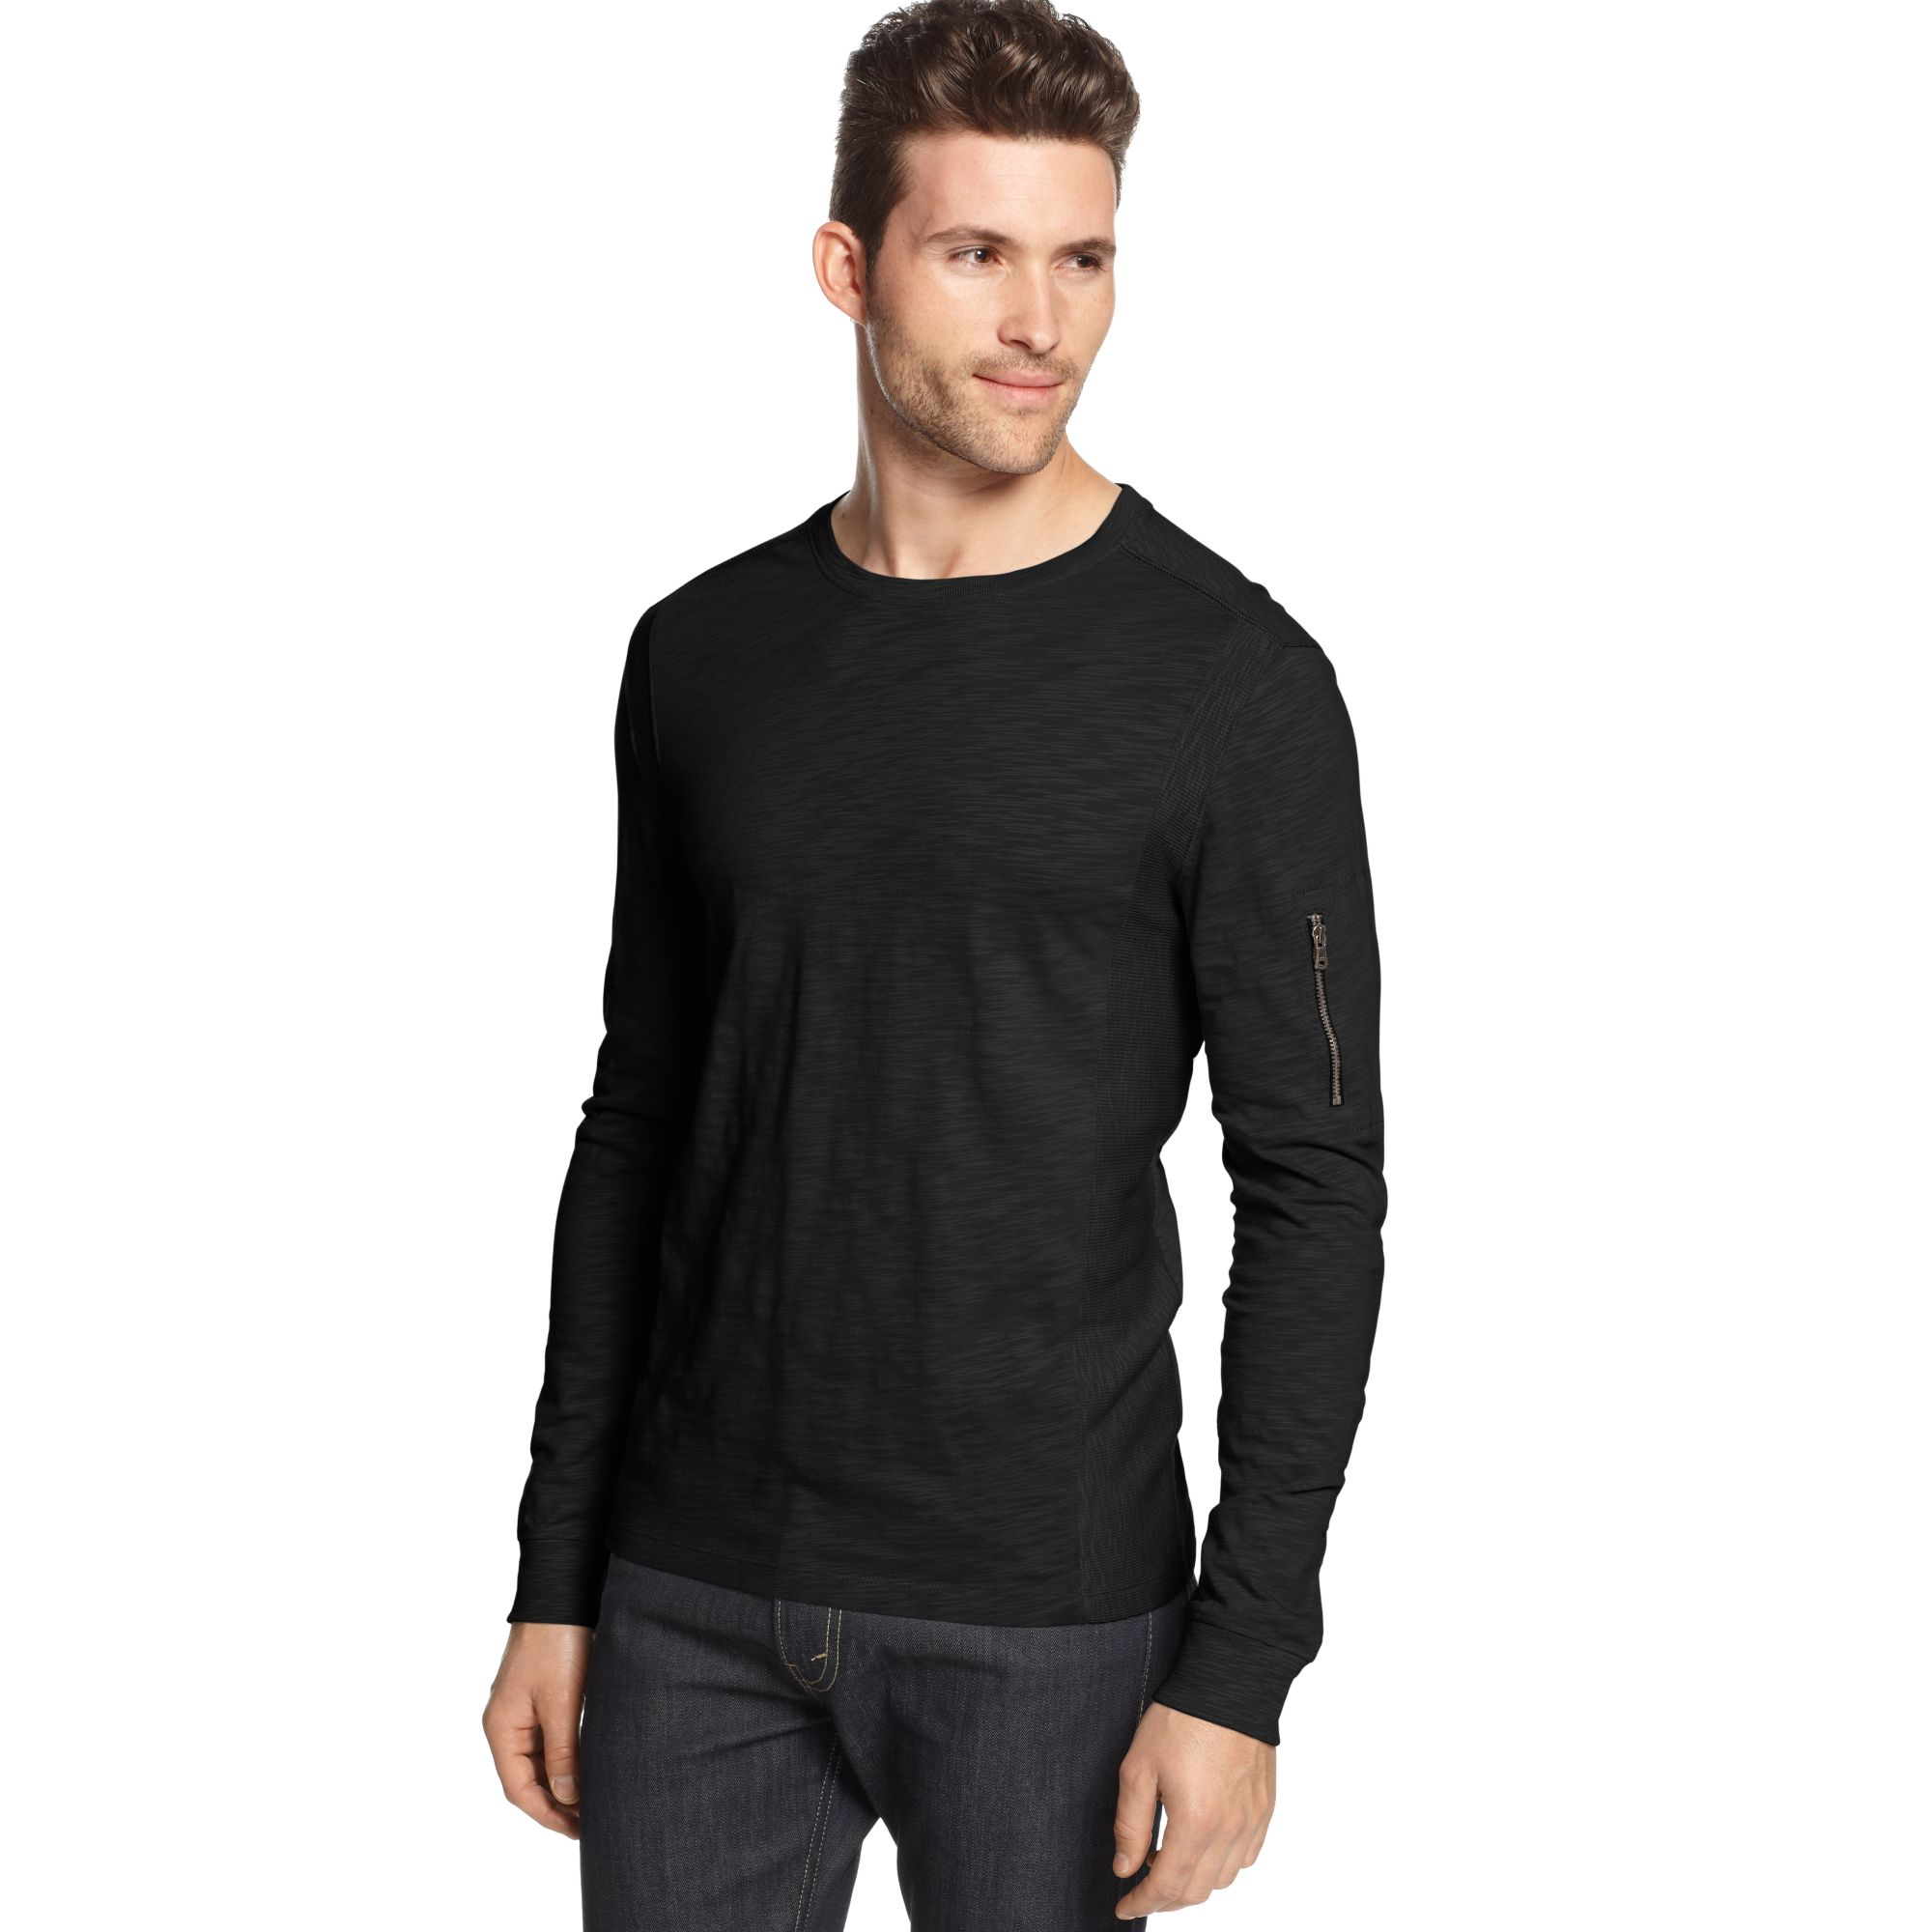 Men's crew neck t-shirts are easy to wear and style. Our t-shirts have super soft fabric, so you can go through your day in comfort. Pair a Contrast Pocket Crew Neck Tee with some Skinny Dark Wash Soft Cotton Jeans for a casual outfit.